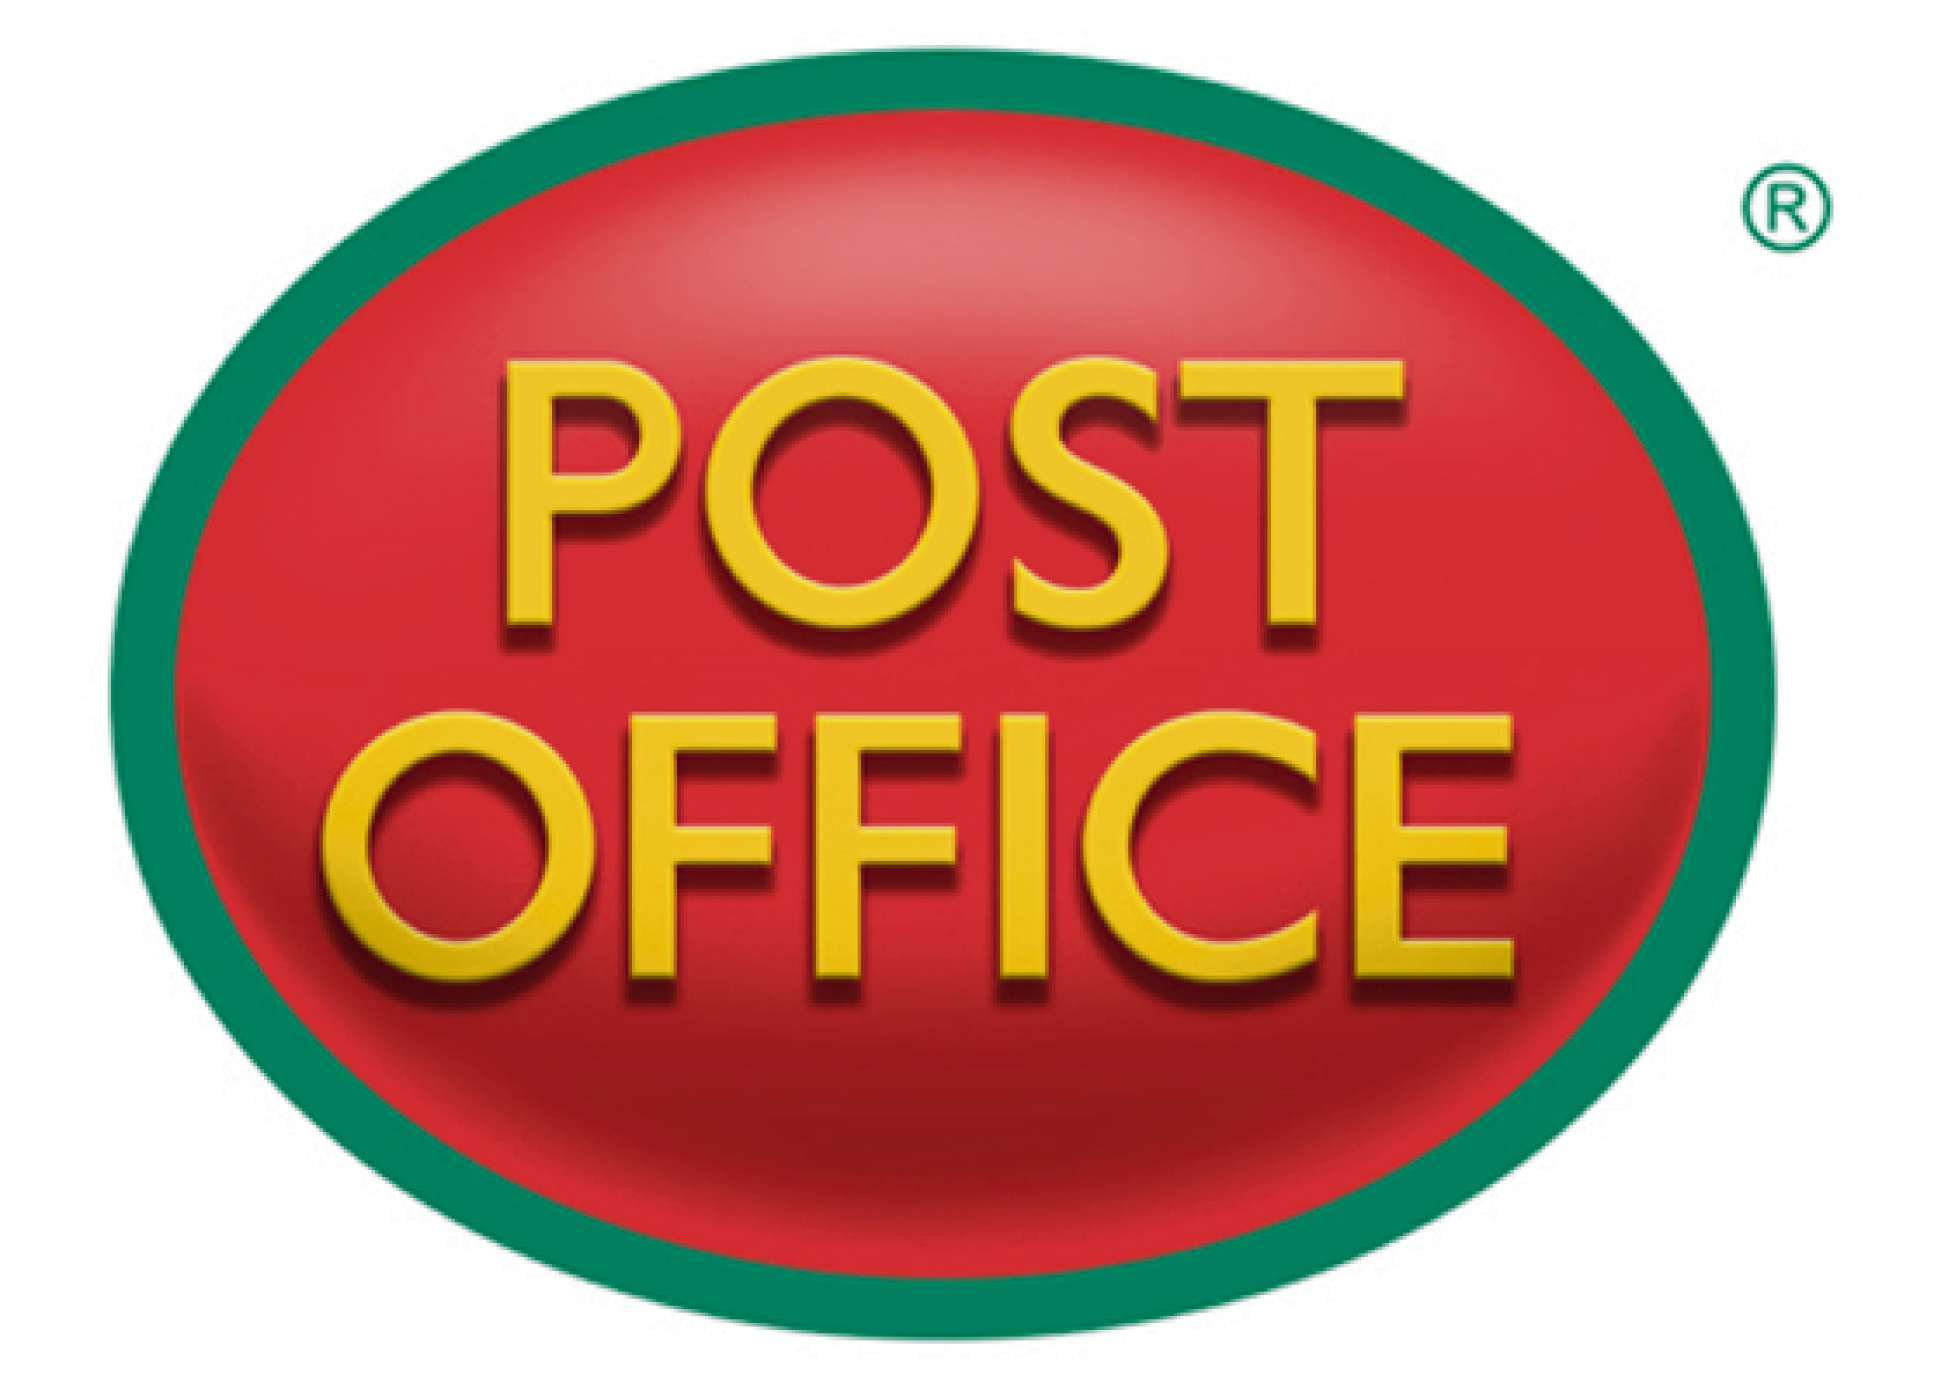 The Post Office has dropped plans to relocate the Danbury branch to